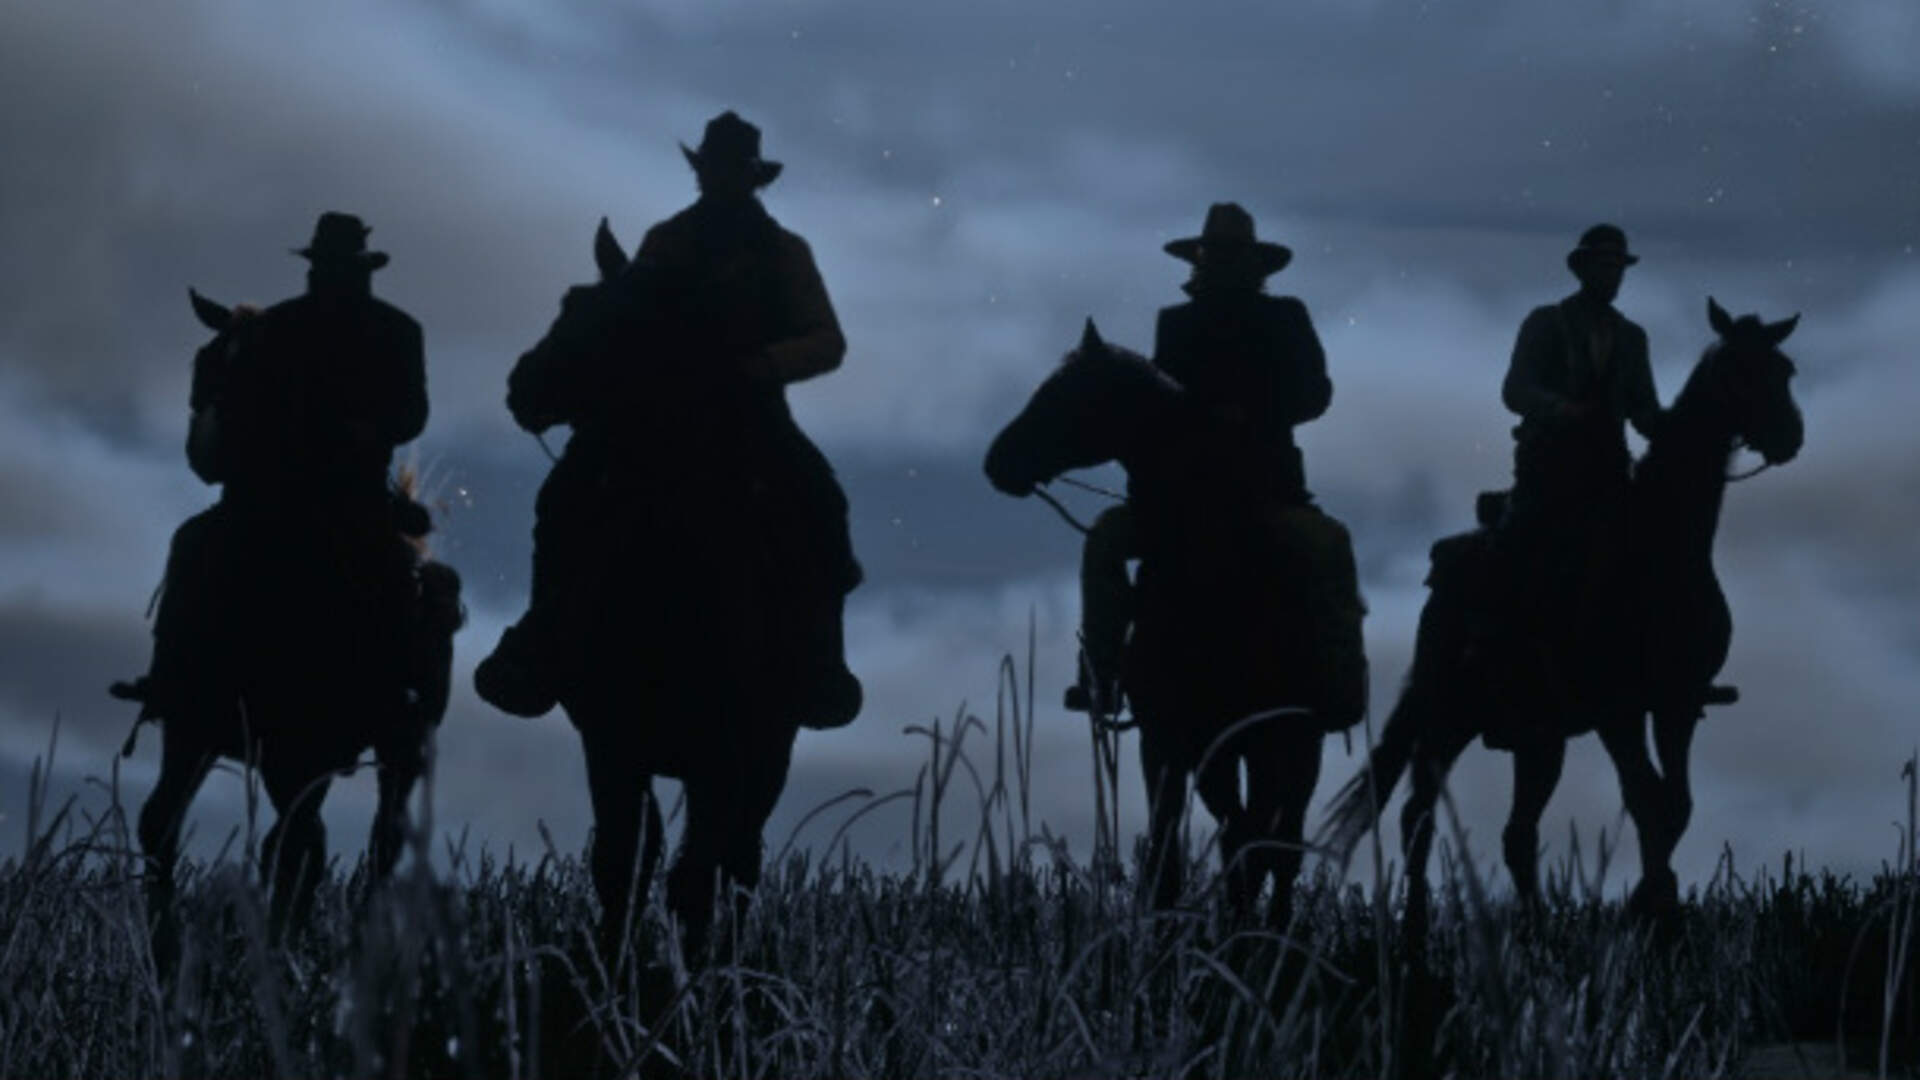 Red Dead Redemption 2 Xbox One X Vs PS4 Pro Graphics Comparison Reveals Some Surprising Results